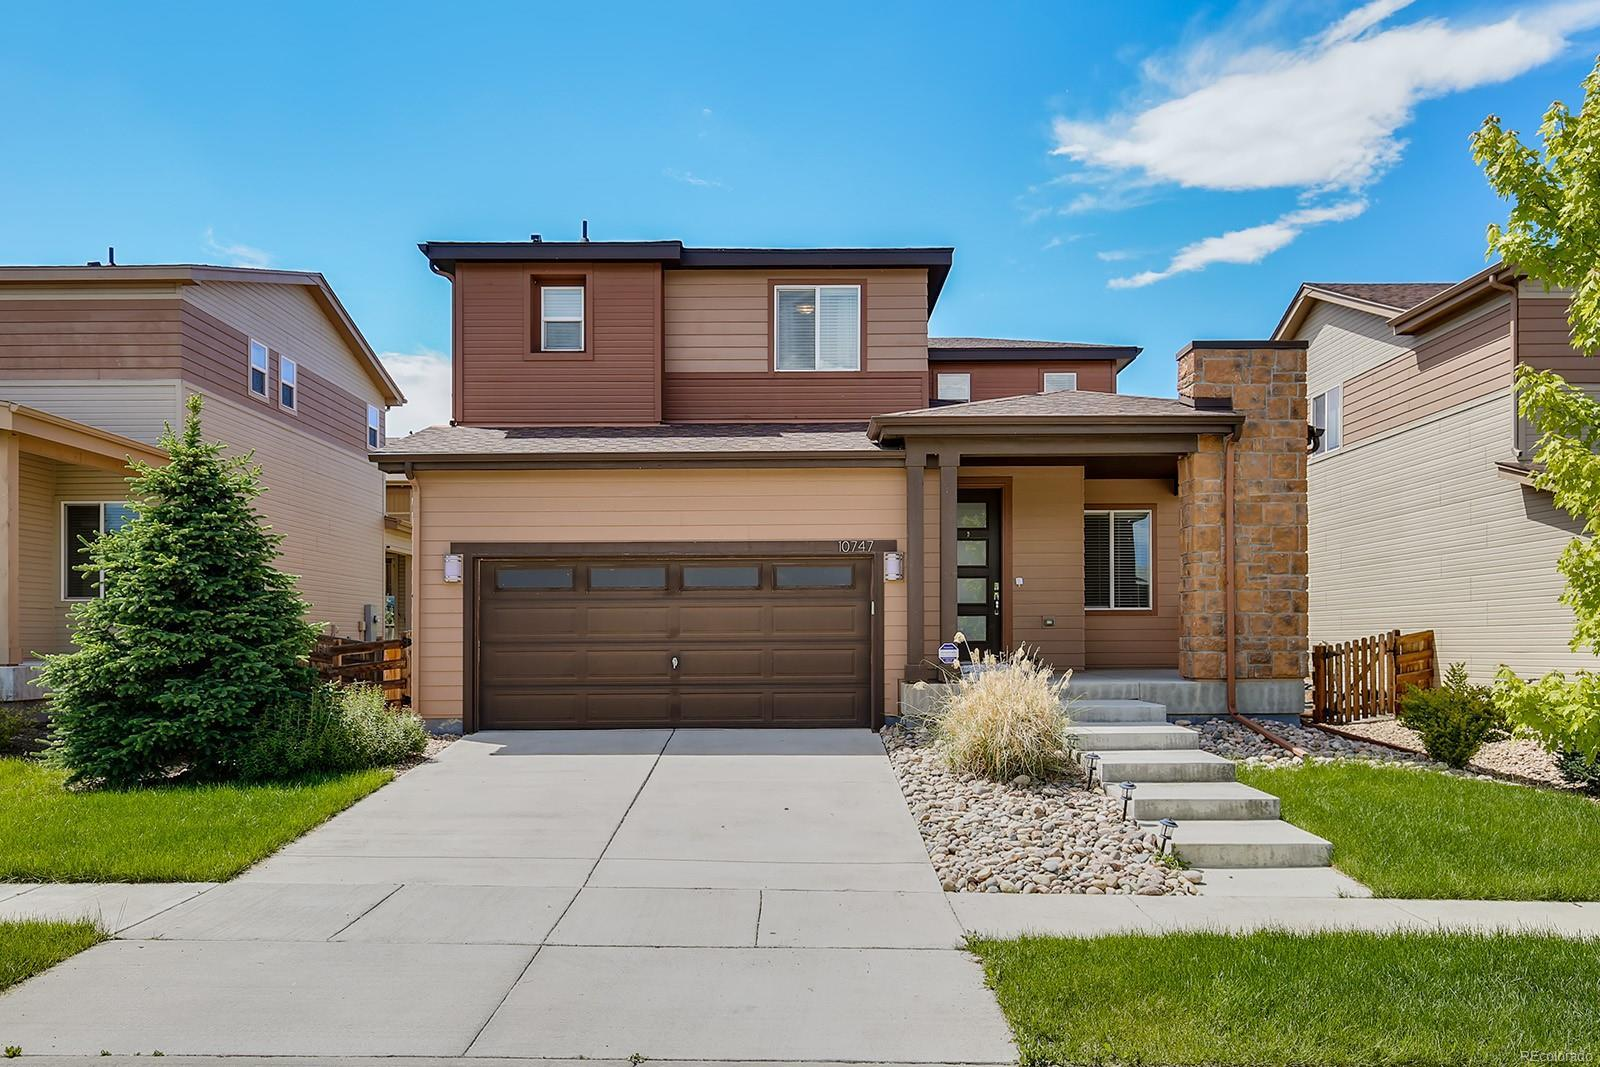 10747 Truckee Circle, Commerce City, CO | MLS# 4758832 | Flat Fee